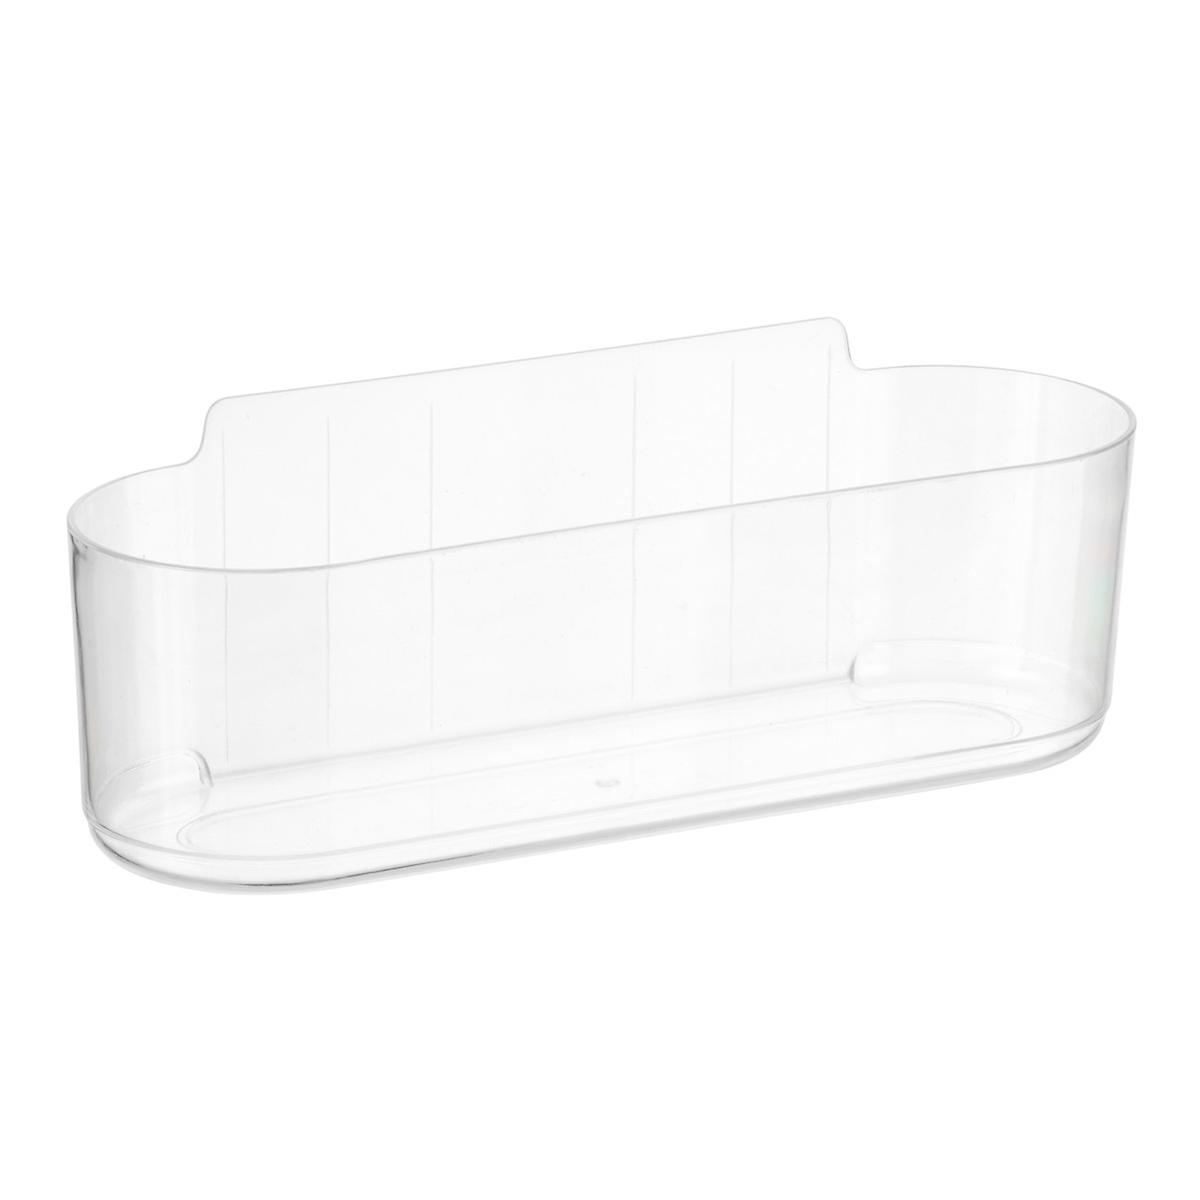 3M Command Clear Caddies | The Container Store